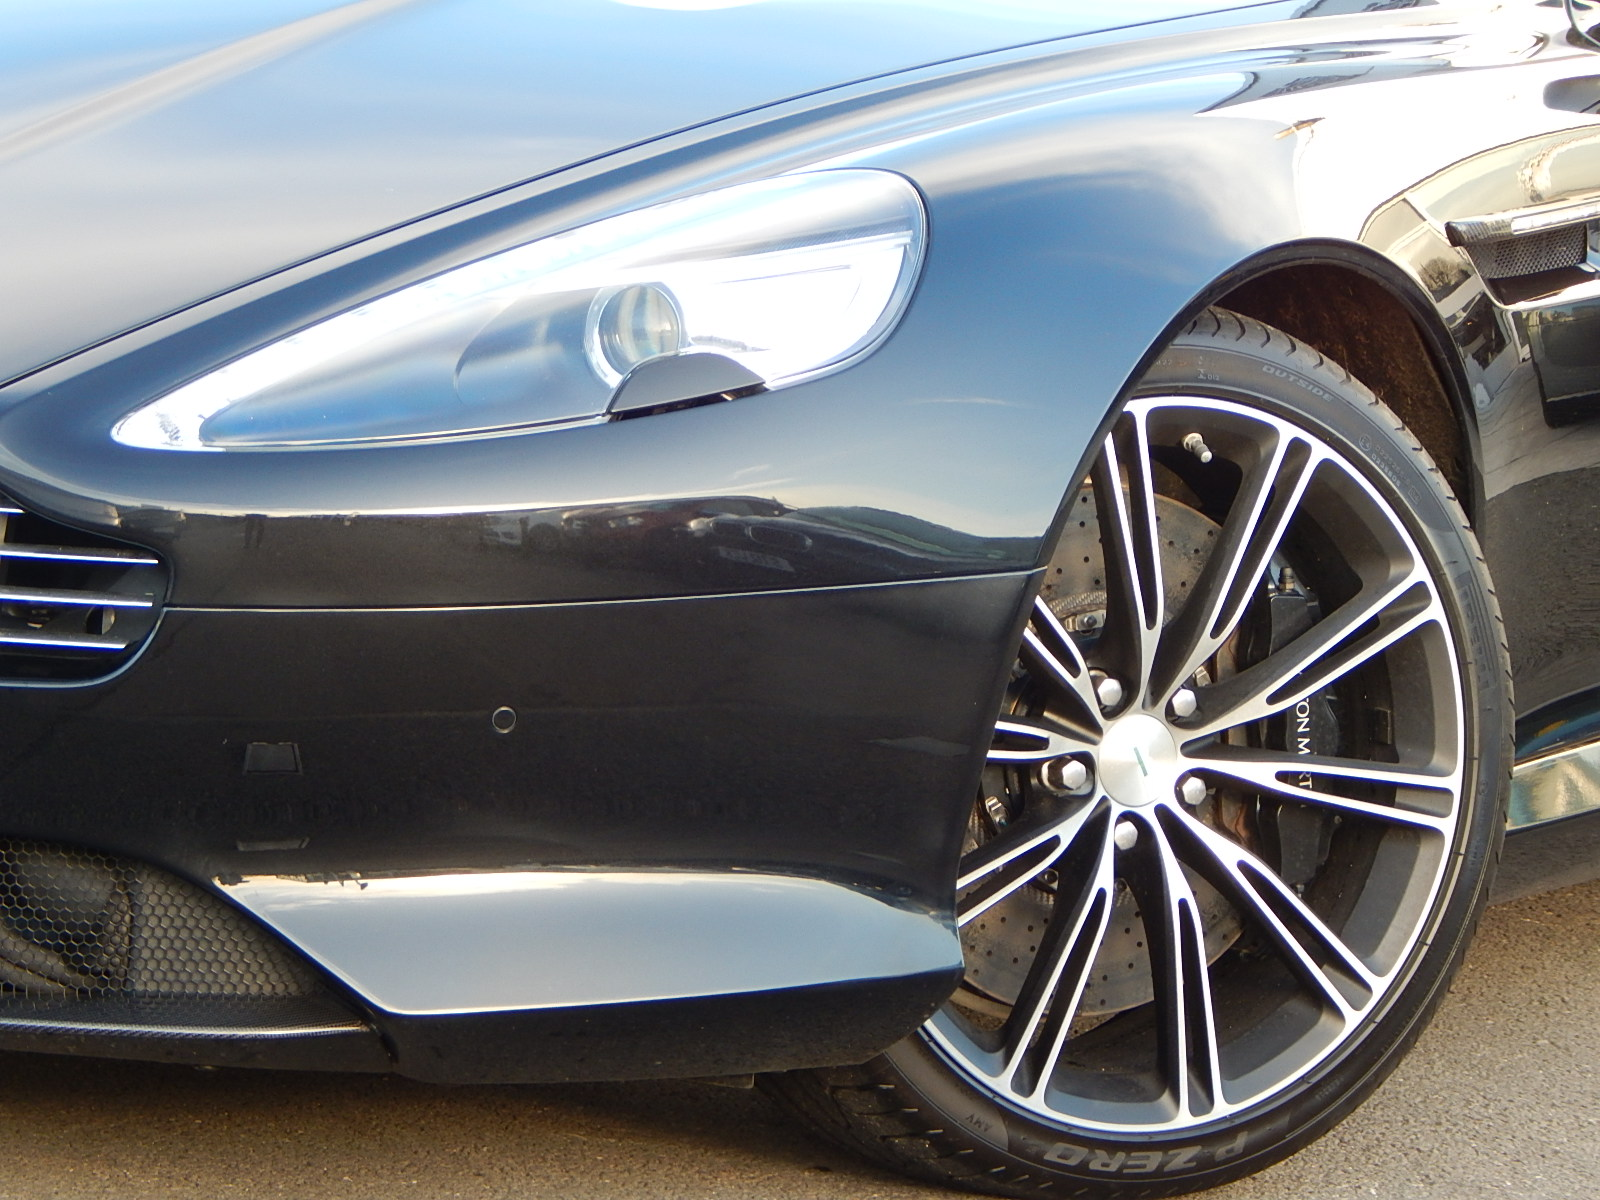 Aston Martin DB9 V12 2dr Touchtronic, Carbon Edition image 7